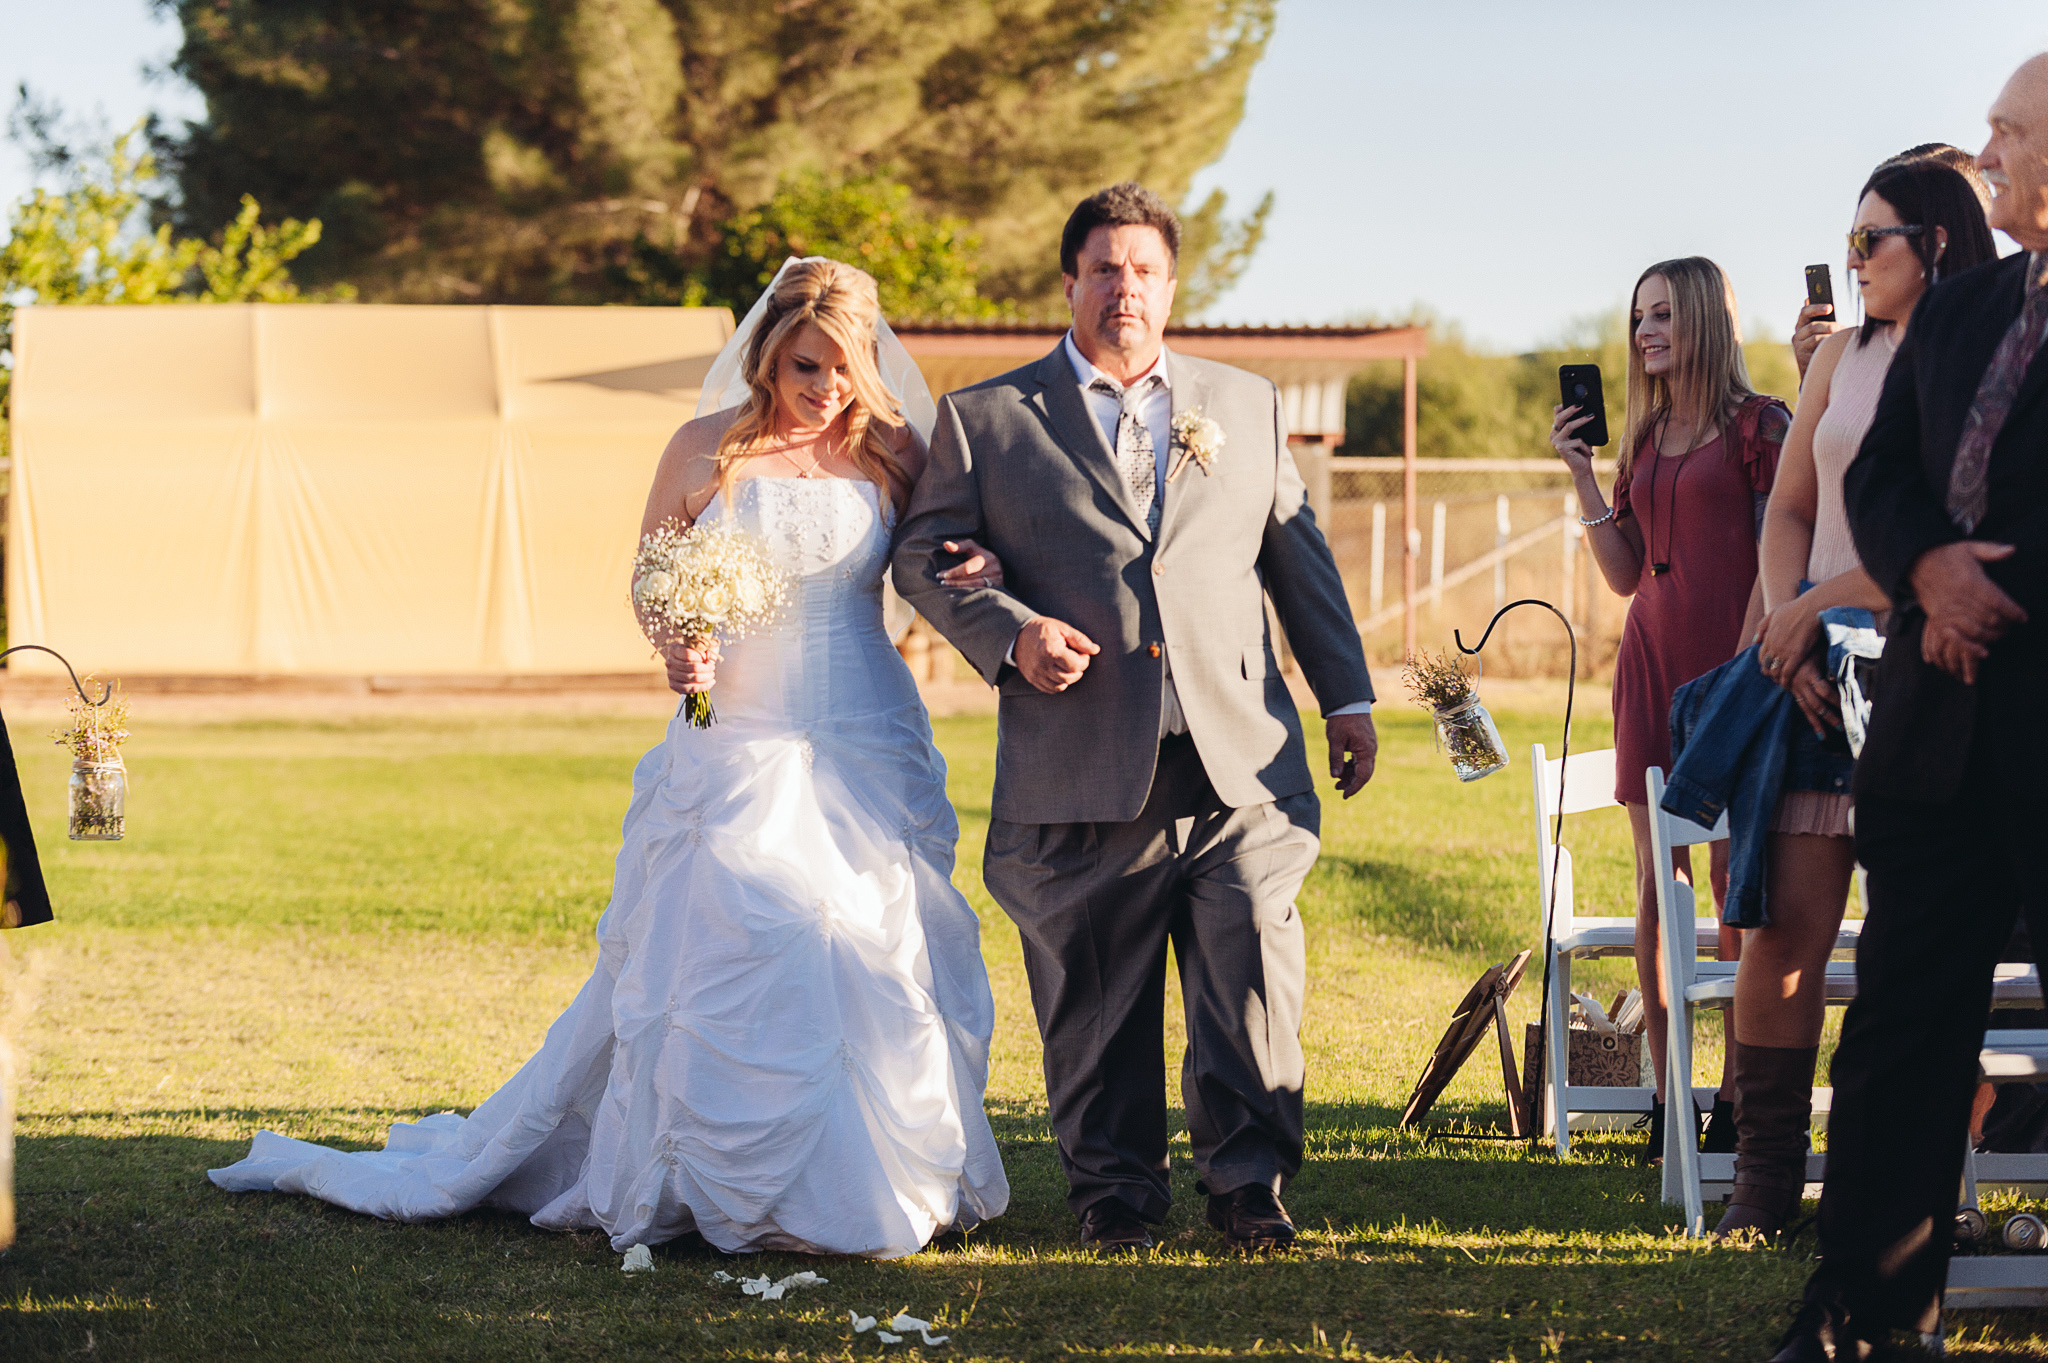 wedding-photography-az-andrew-ybanez-elemental-fotos-gilbert-arizona-21.jpg